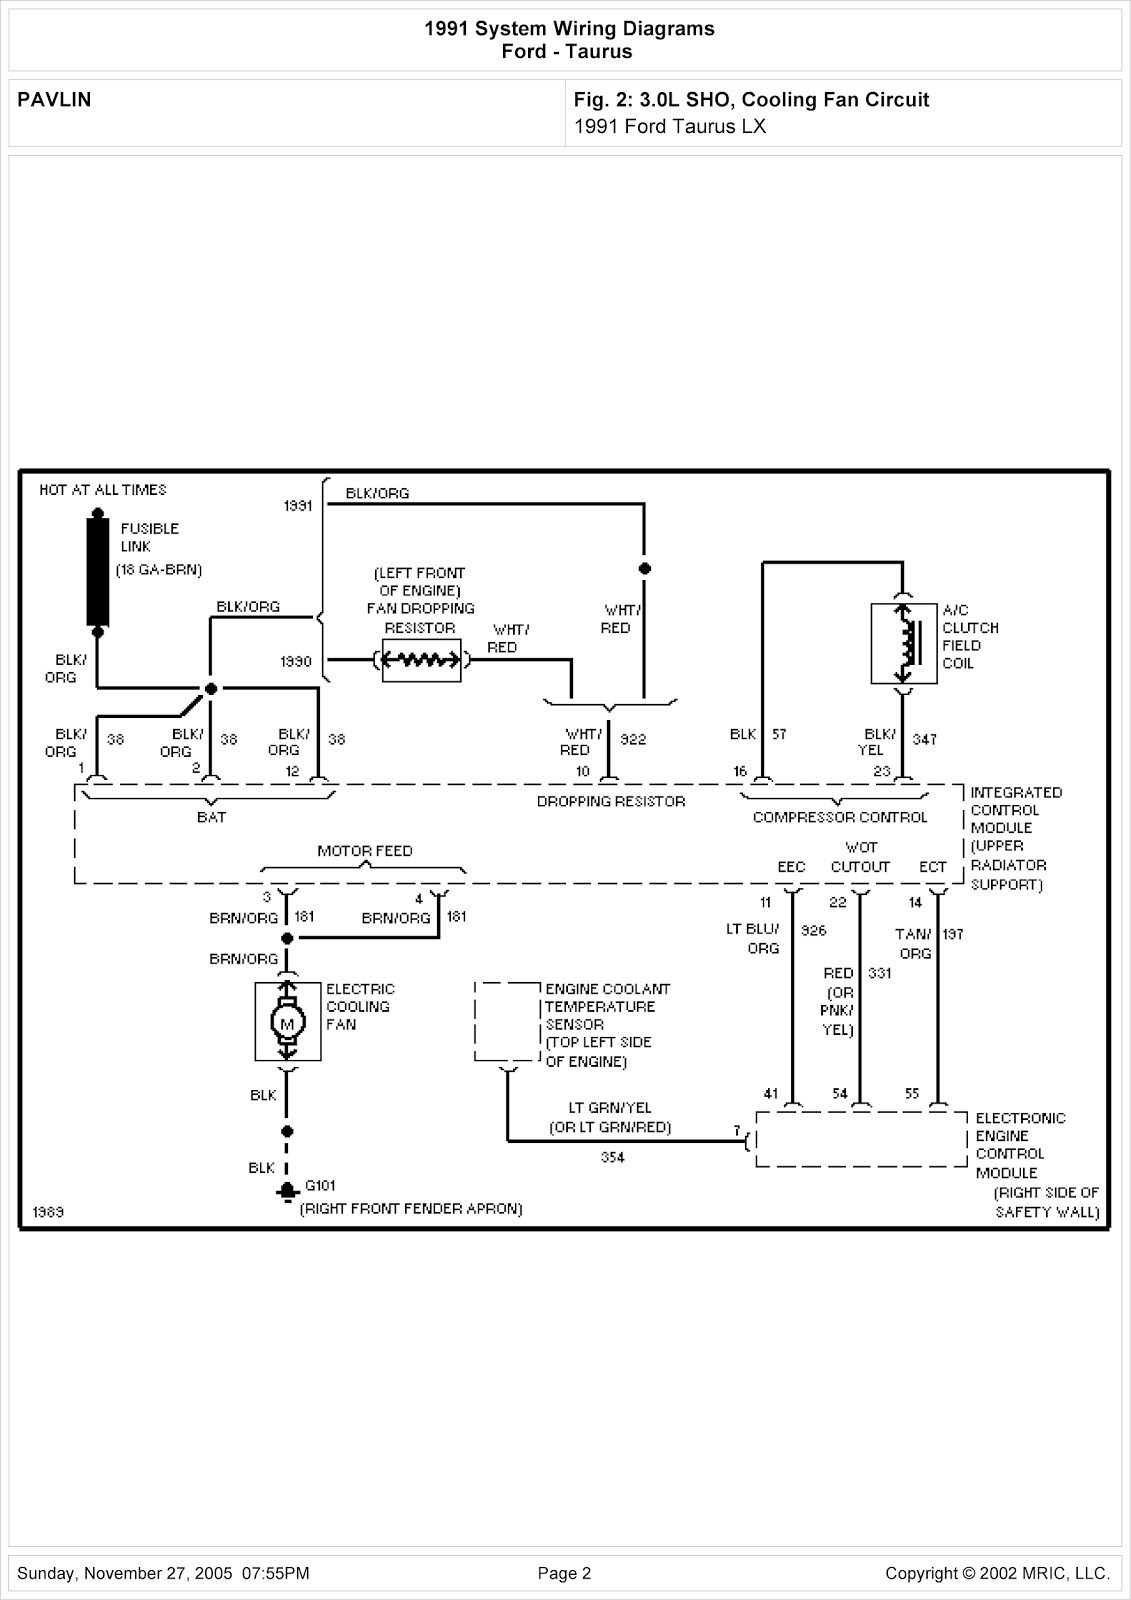 taurus fan wiring diagram 1999 ford taurus system wiring diagram cooling fan circuit 1999 ford taurus system wiring diagram cooling